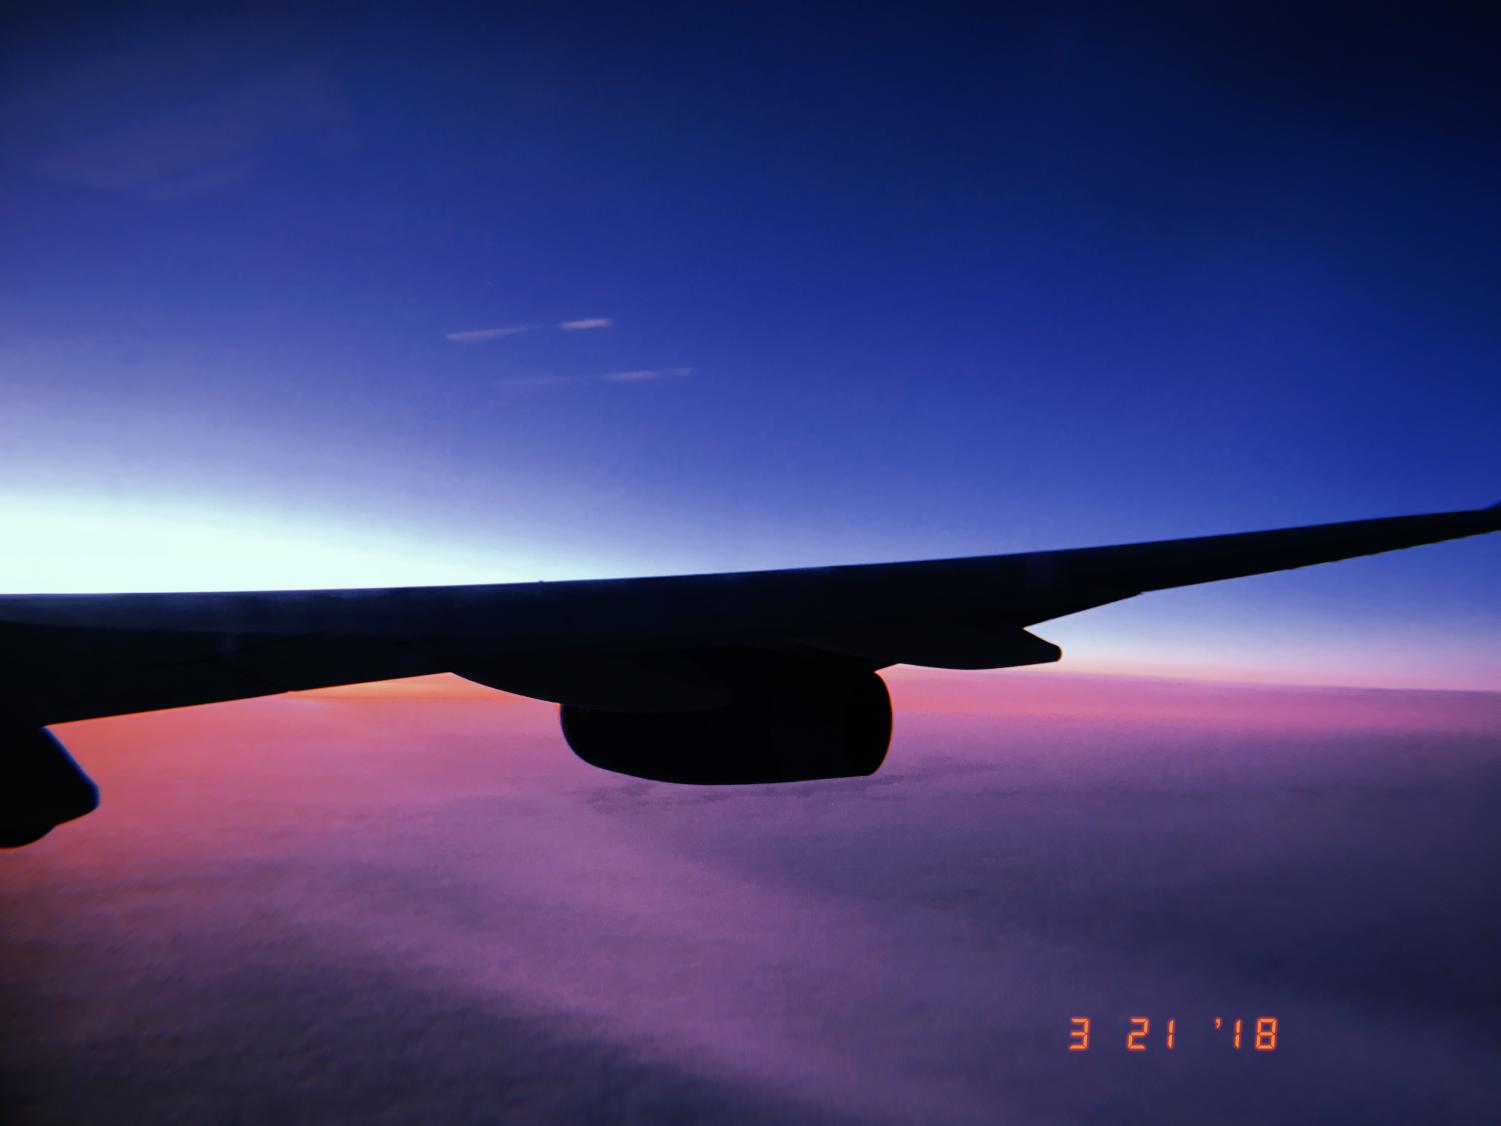 The+sun+rises+over+the+plane+that+is+taking+23+students+and+chaperones+to+the+country+of+England%2C+to+explore+the+city+of+London.+After+an+almost+nine+hour+flight%2C+completely+over+night%2C+the+first+glimpses+of+the+sun+coming+through+the+windows+were+a+sigh+of+relief%2C+knowing+landing+will+be+coming+up+soon.+